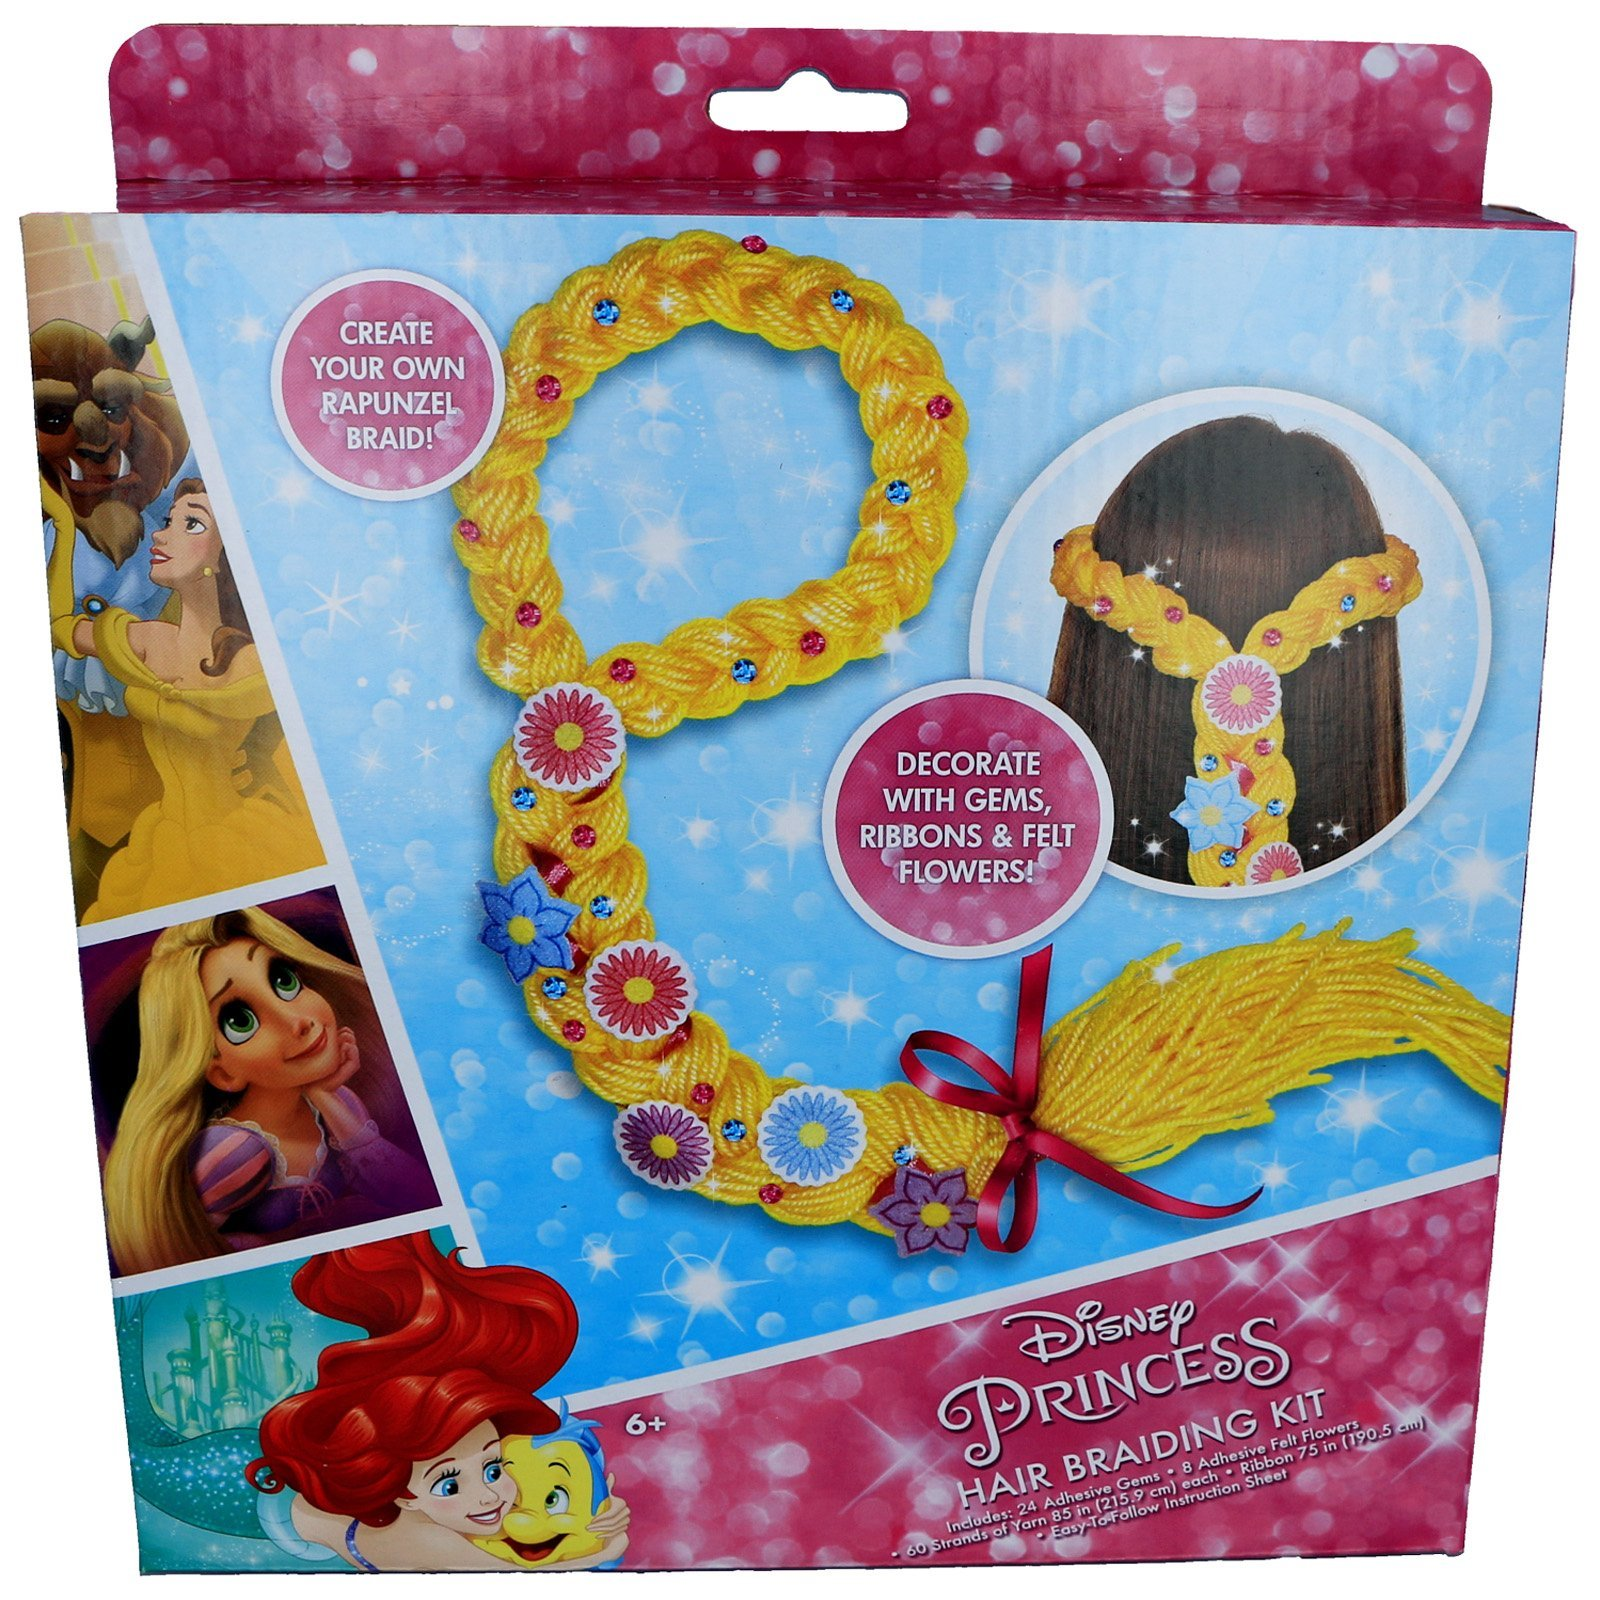 Disney Princess Girls DIY Hair Braiding Kit with Decorative Gems Ribbons Flowers